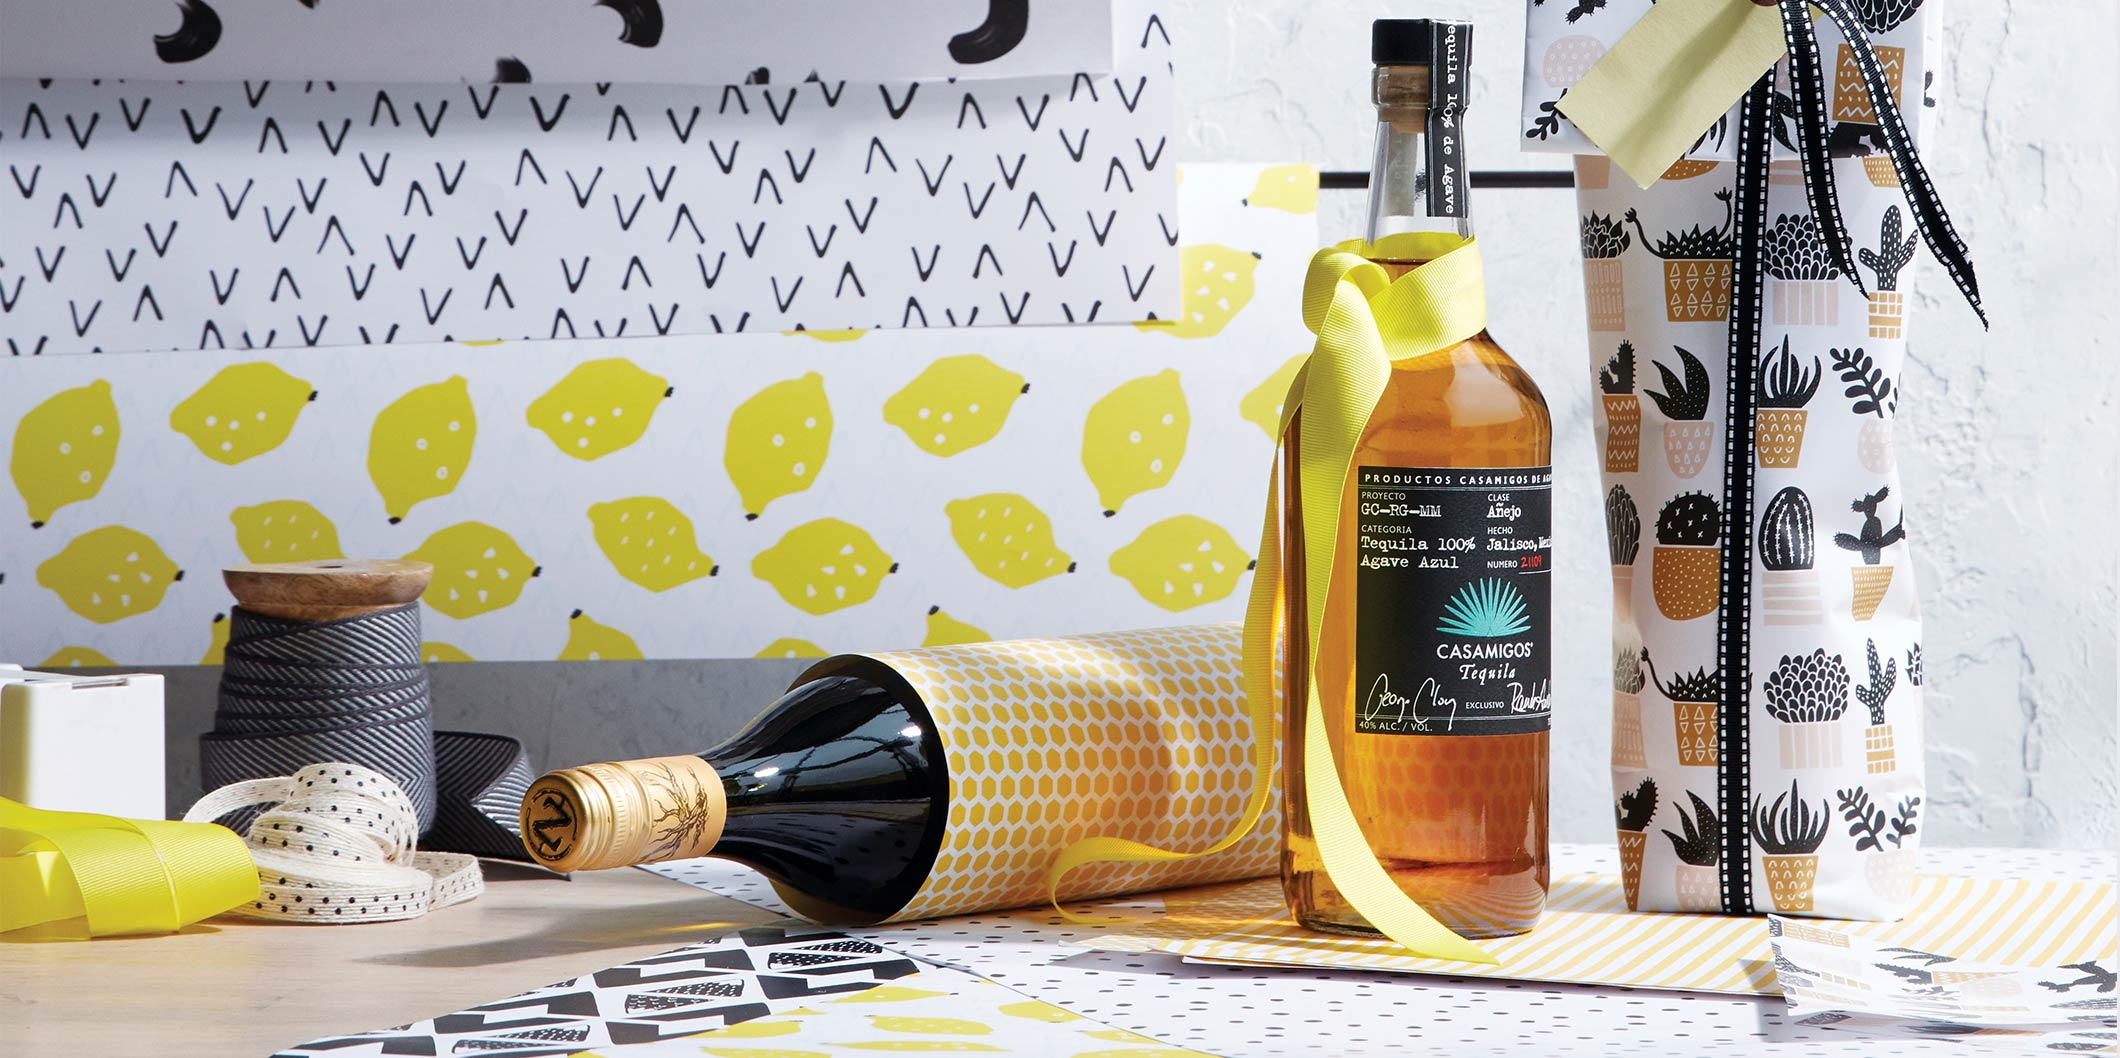 Image from gifts with paper and ways to wrap bottles